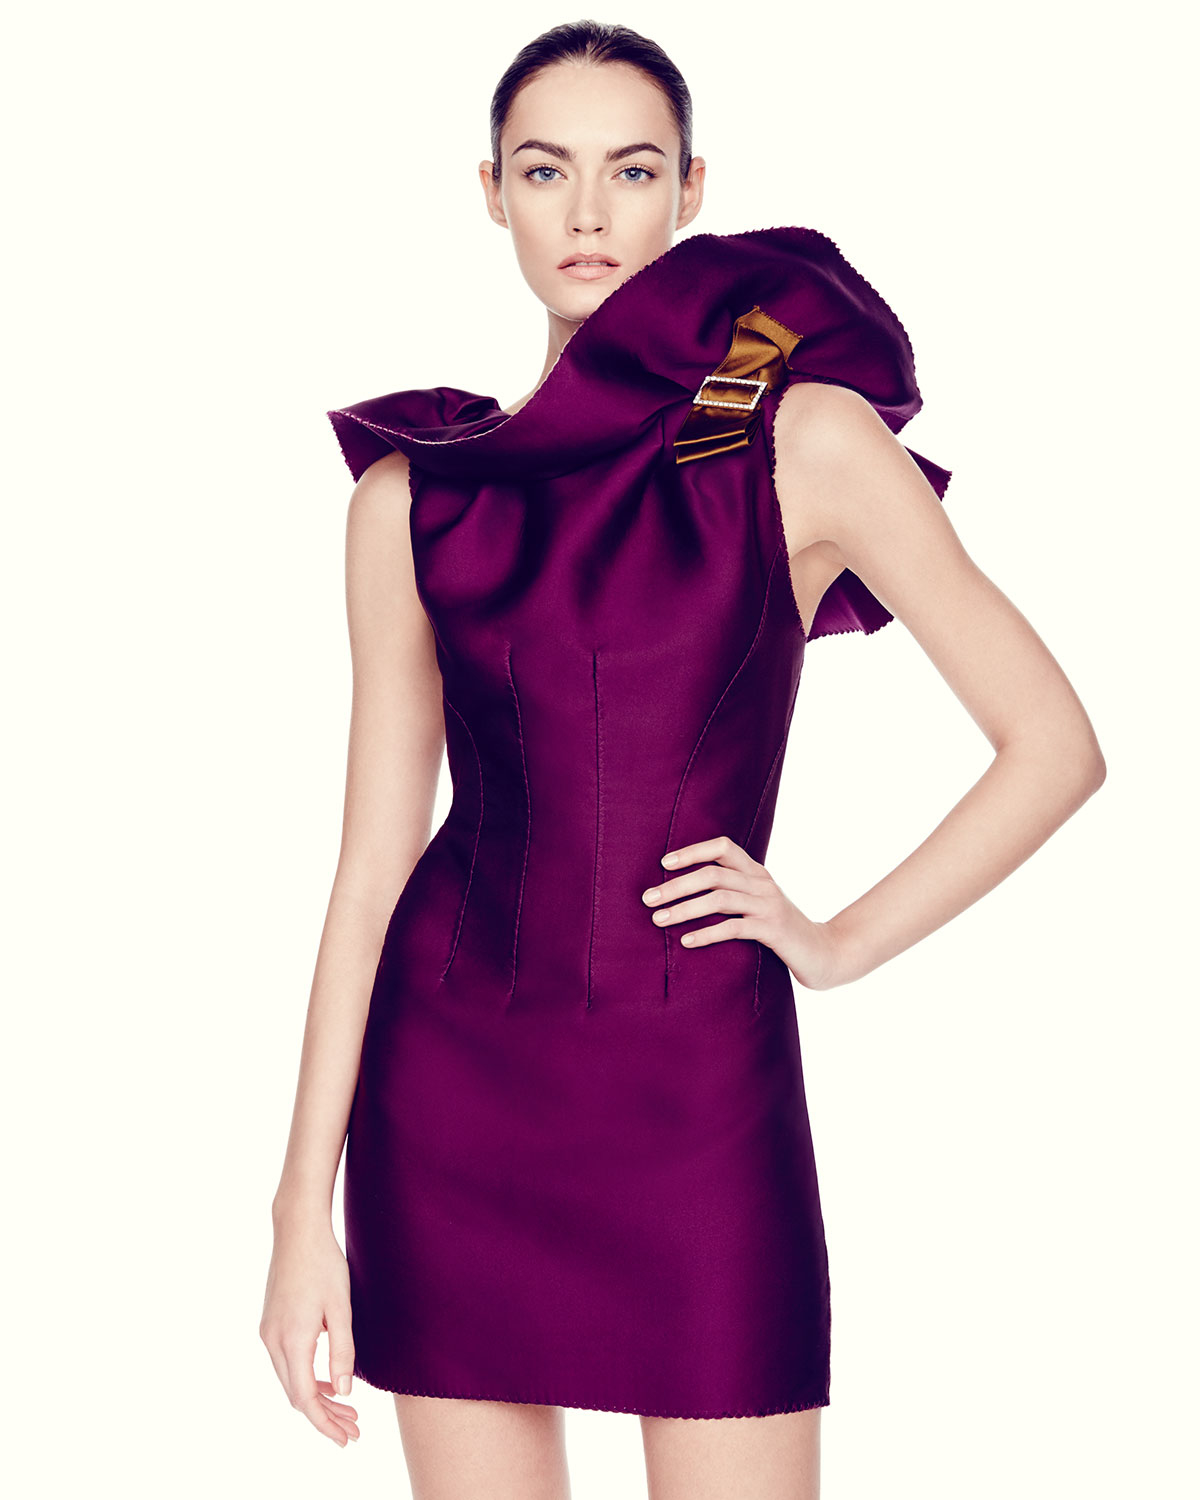 Buy Cheap With Credit Card Lanvin long ruffle dress Buy Cheap Low Shipping Sale Very Cheap Fashionable For Sale Cheap 100% Guaranteed ZNEEl92gn